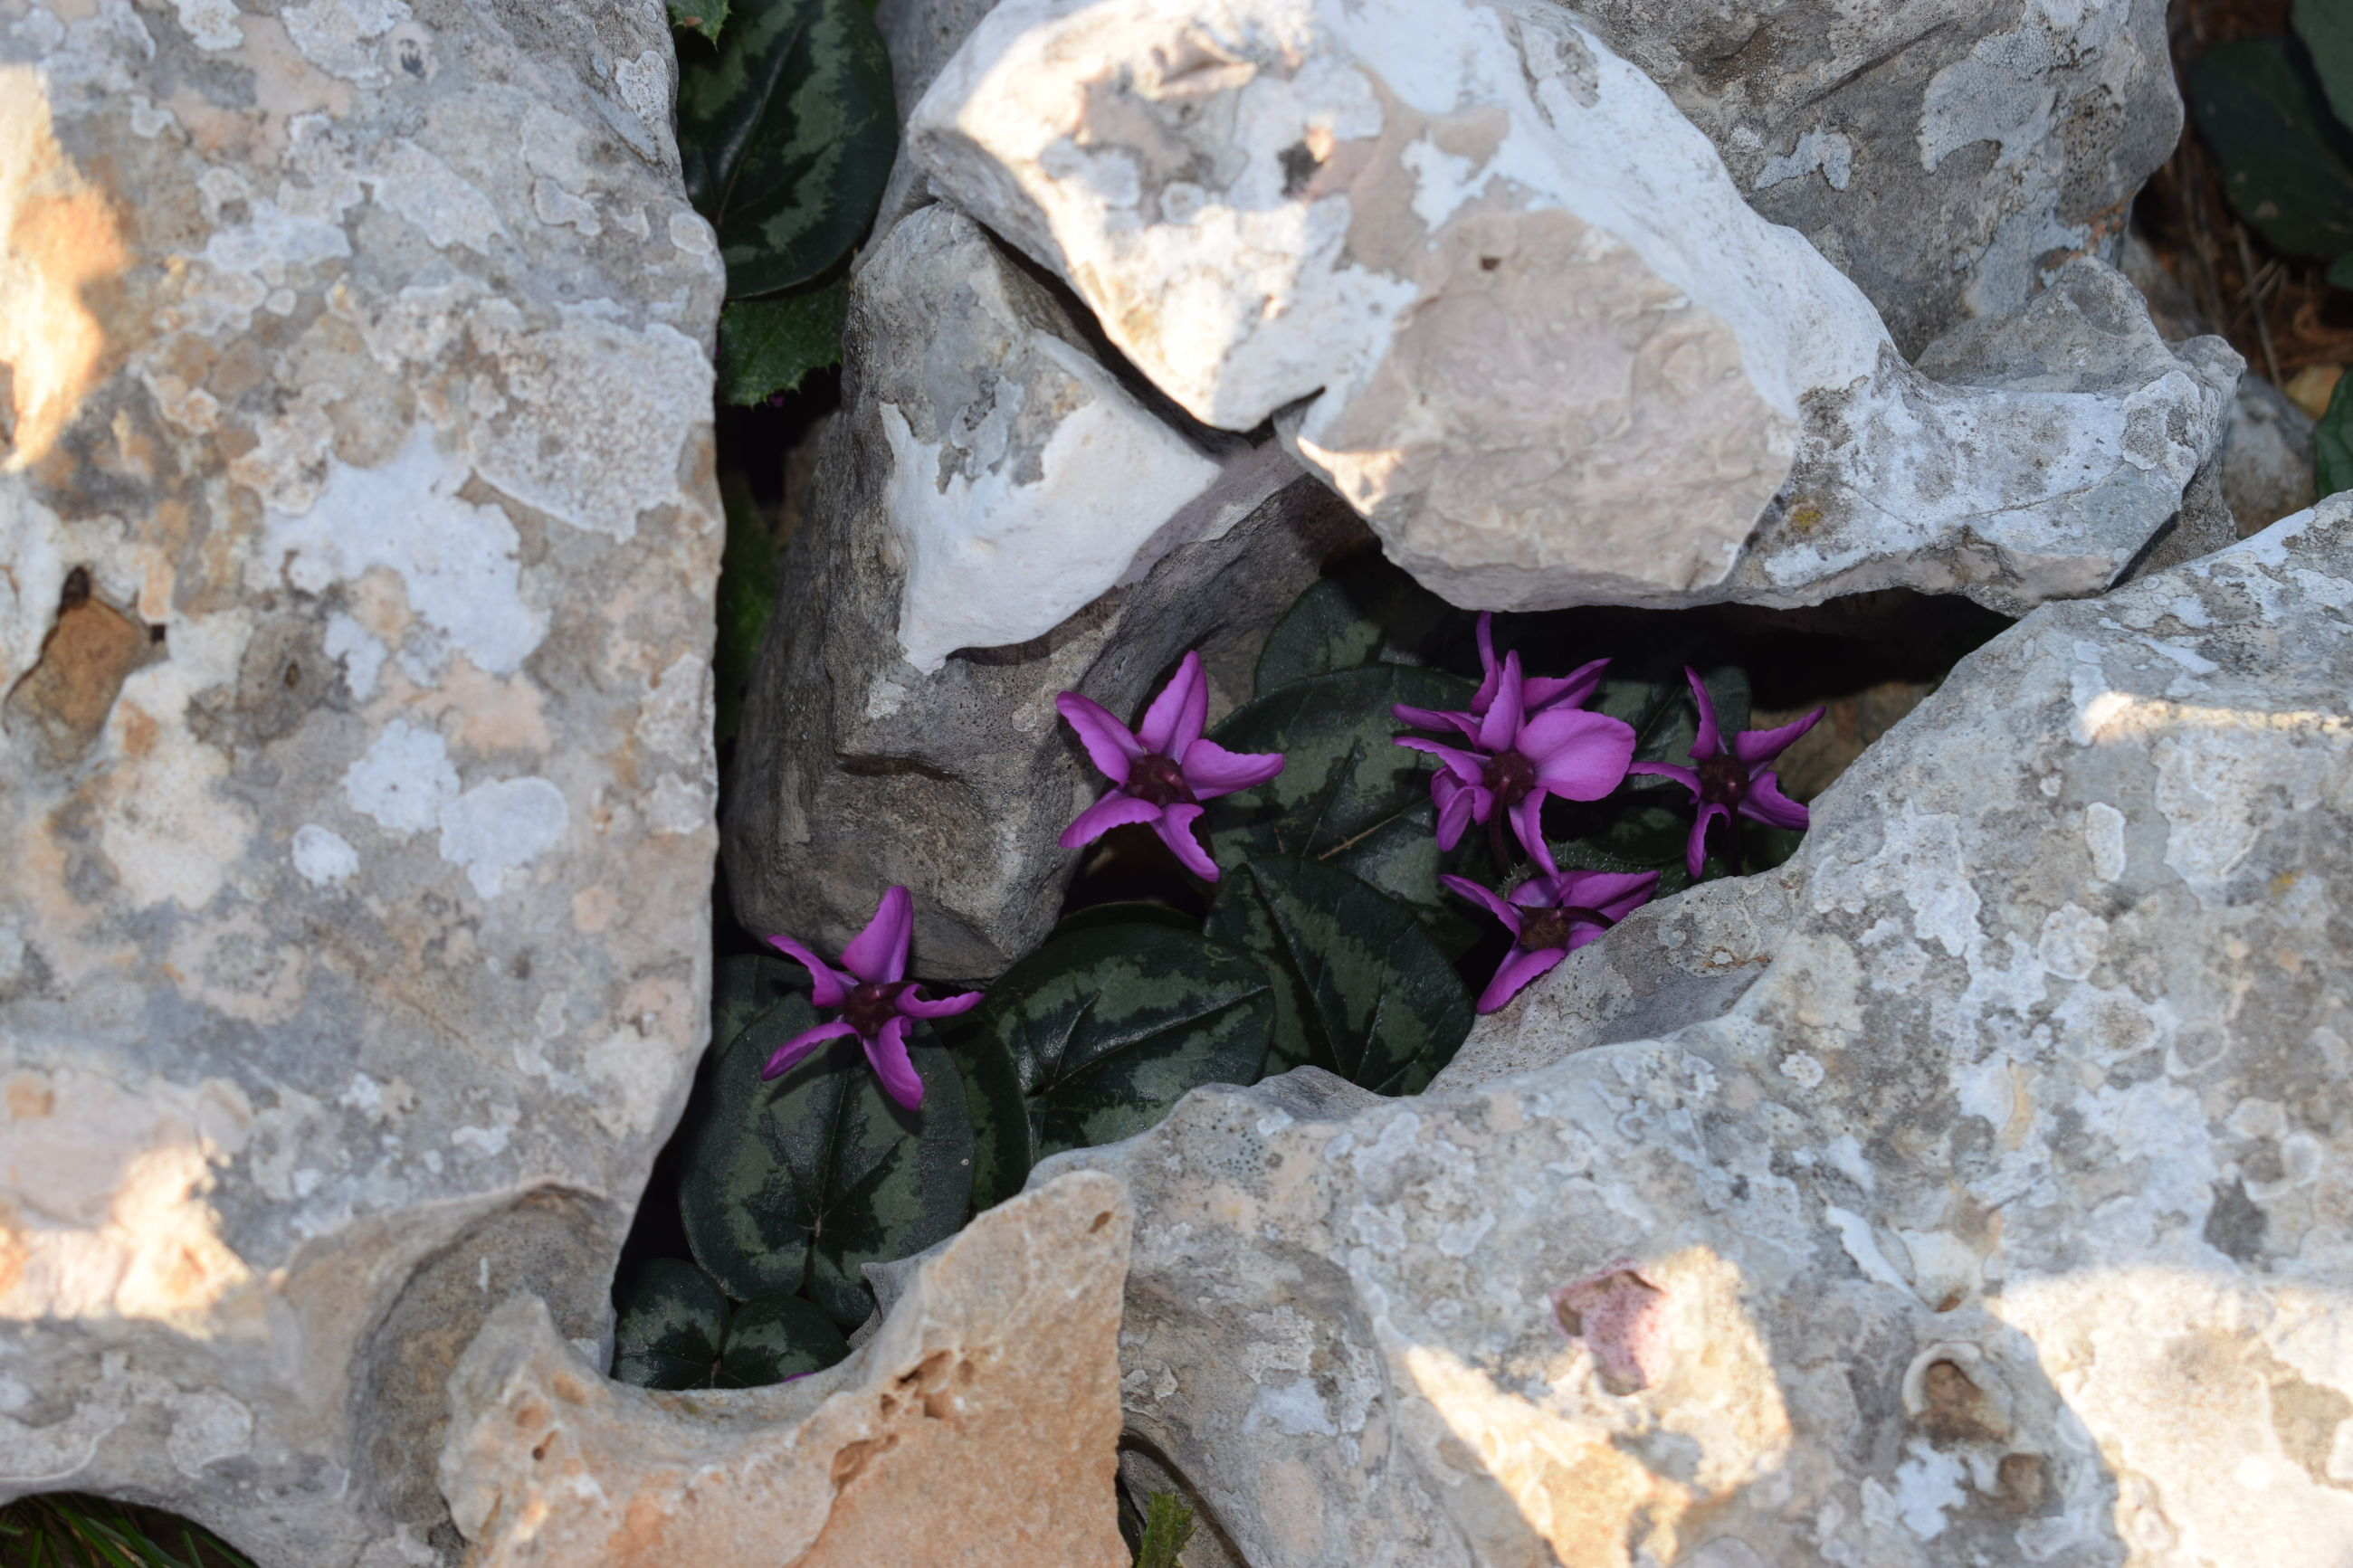 flower, rock, nature, solid, flowering plant, plant, rock - object, no people, close-up, beauty in nature, day, vulnerability, fragility, petal, outdoors, growth, wall - building feature, textured, freshness, pink color, stone wall, flower head